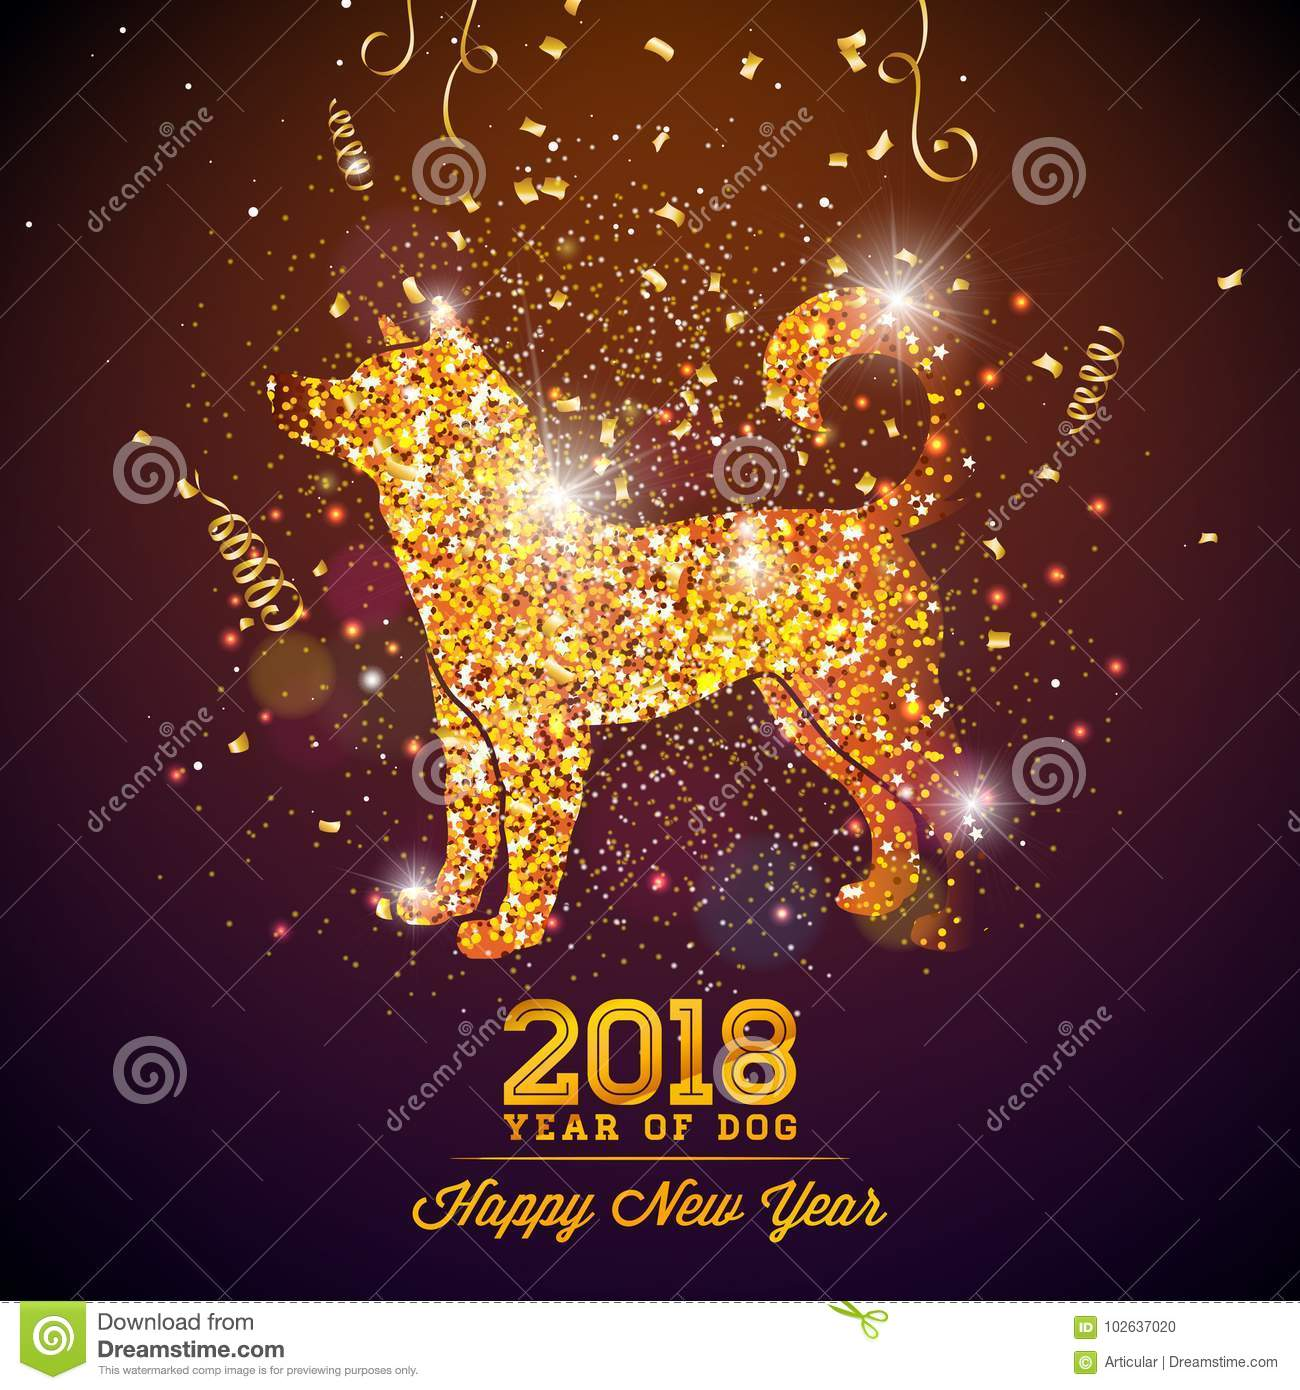 2018 chinese new year illustration with bright symbol on shiny celebration background year of dog vector design